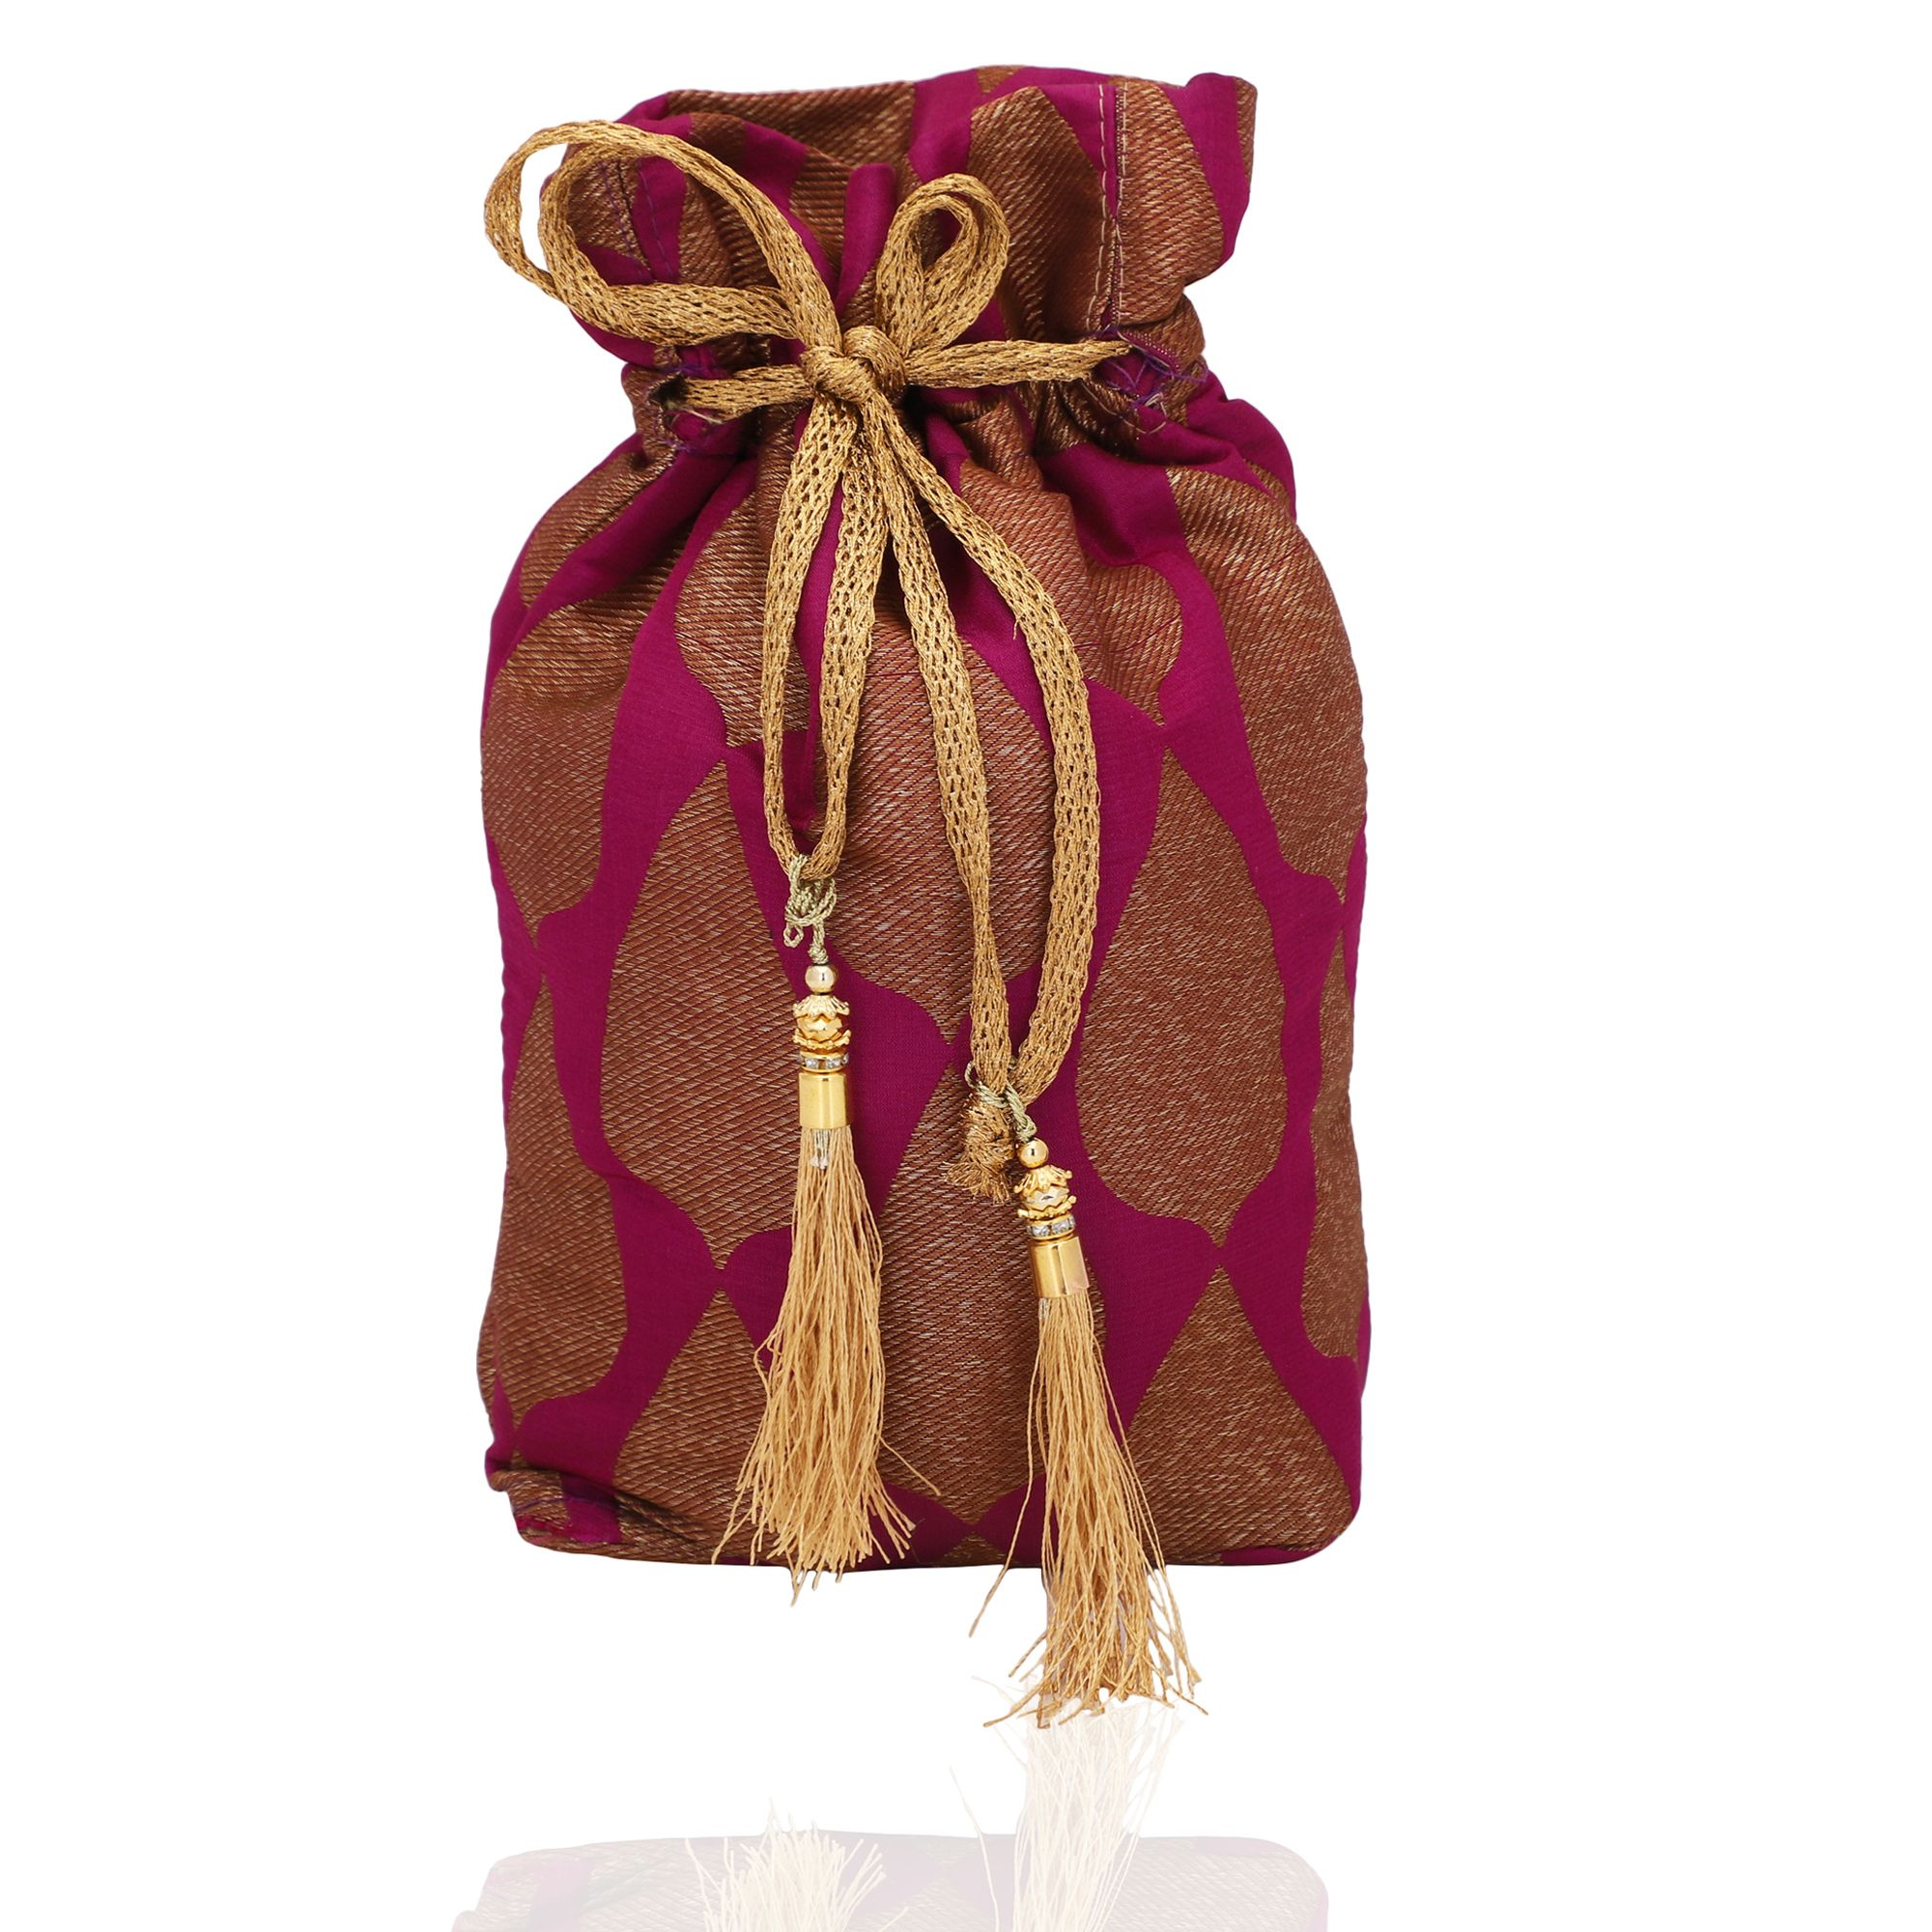 Violet Banarasi Jamawer Potli Bag With Tassels 1